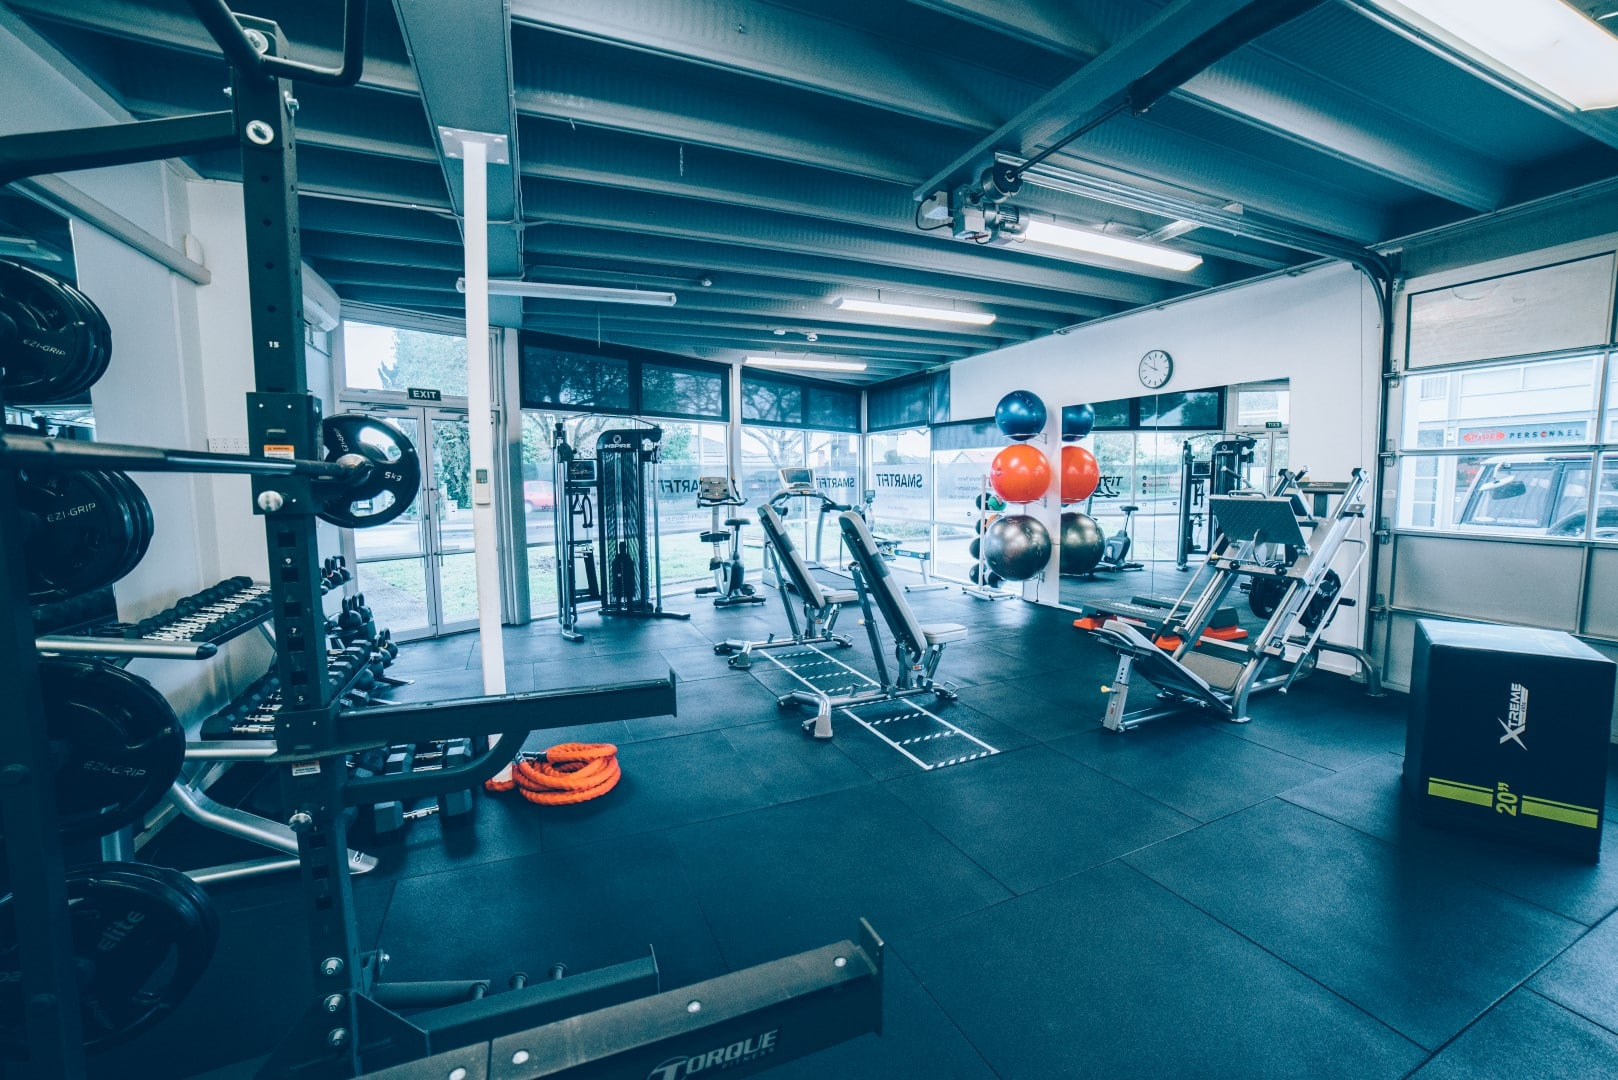 SmartFit Personal Training Studio, Auckland NZ